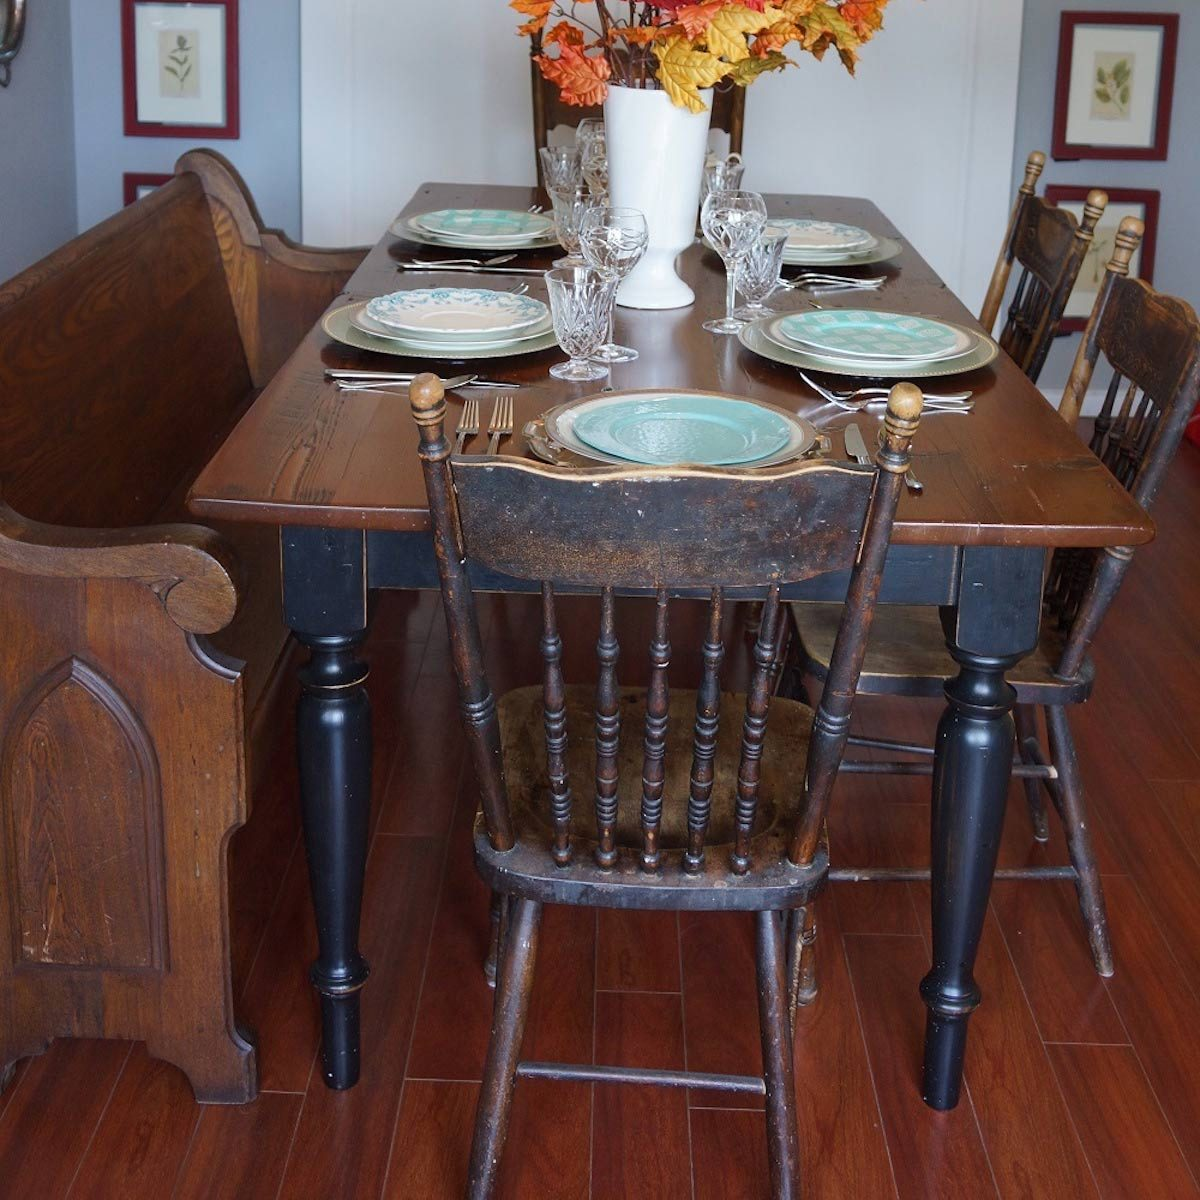 Farmhouse Look: Harvest Table